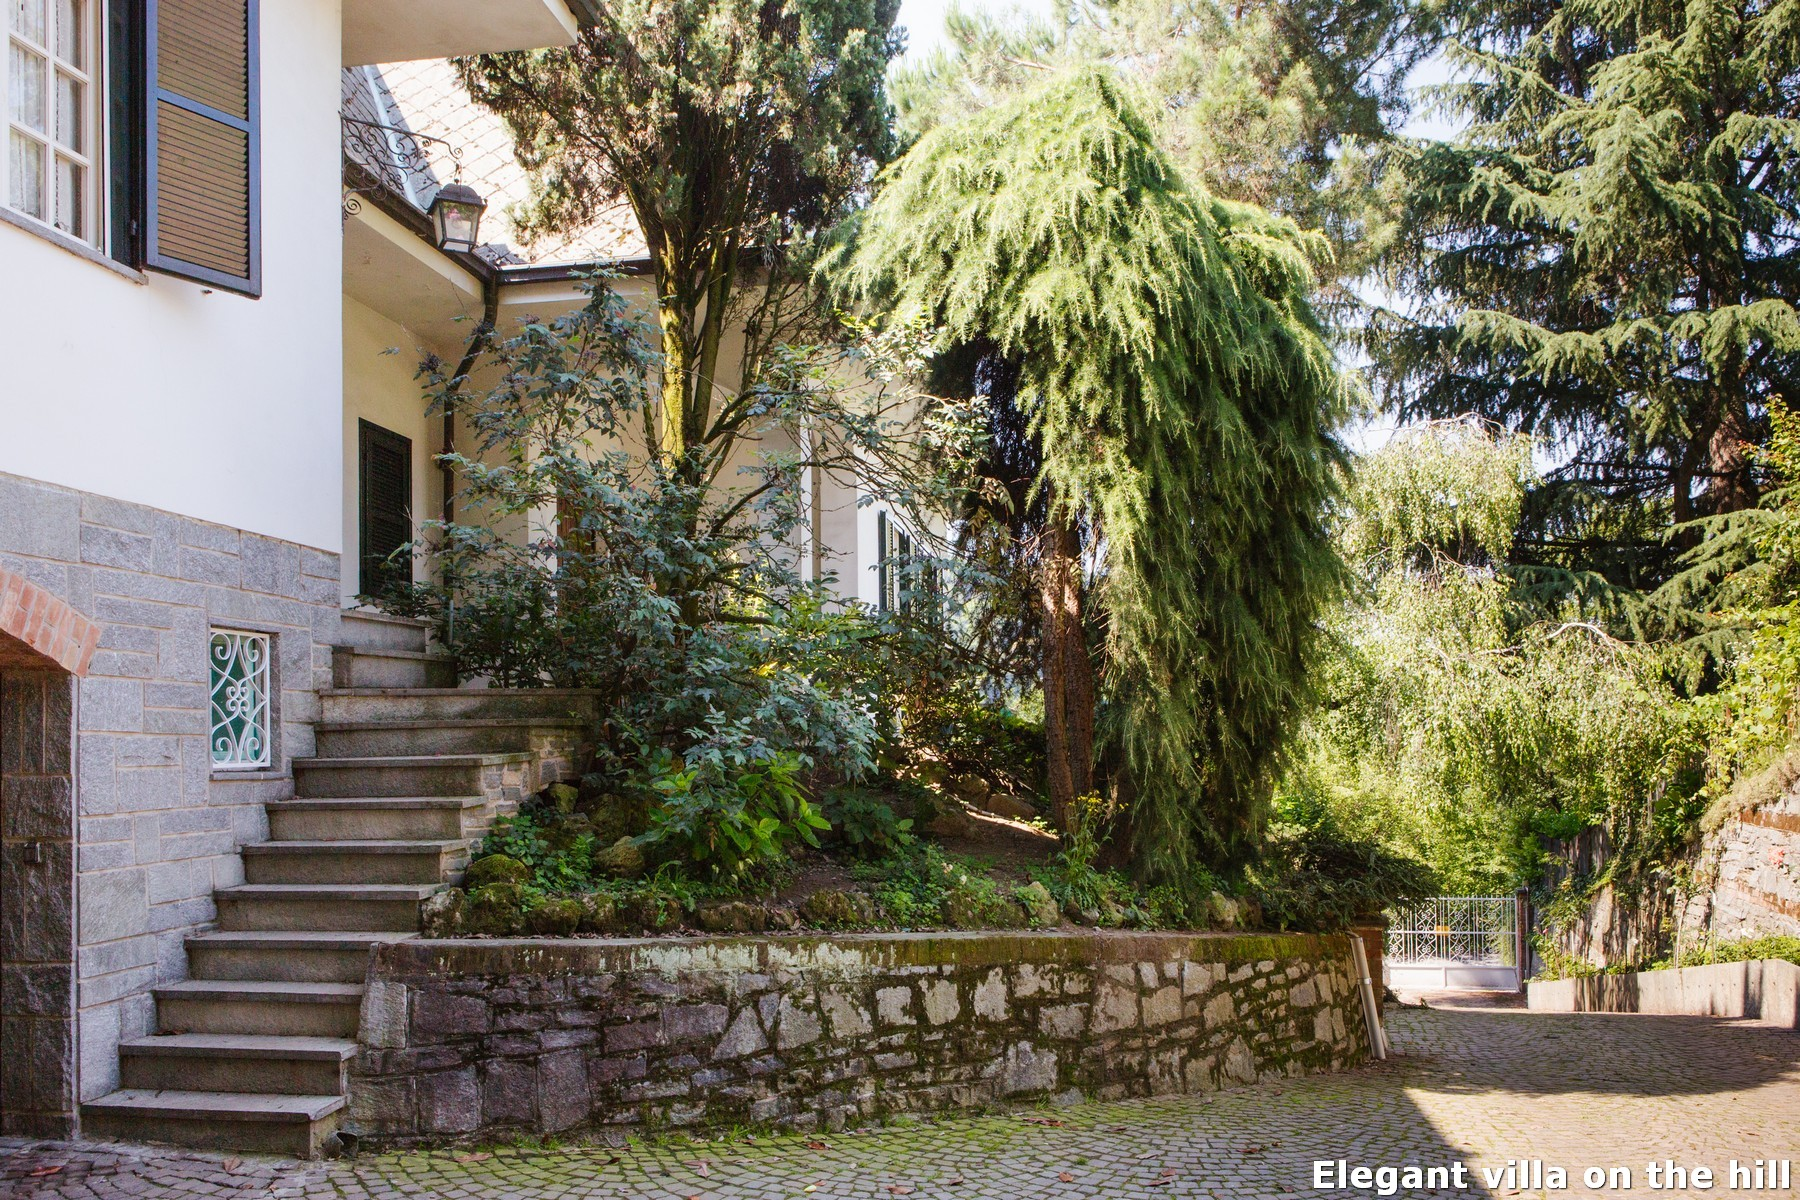 Additional photo for property listing at Elegant villa on the hill Viale XXV Aprile Torino, Turin 10133 Italien